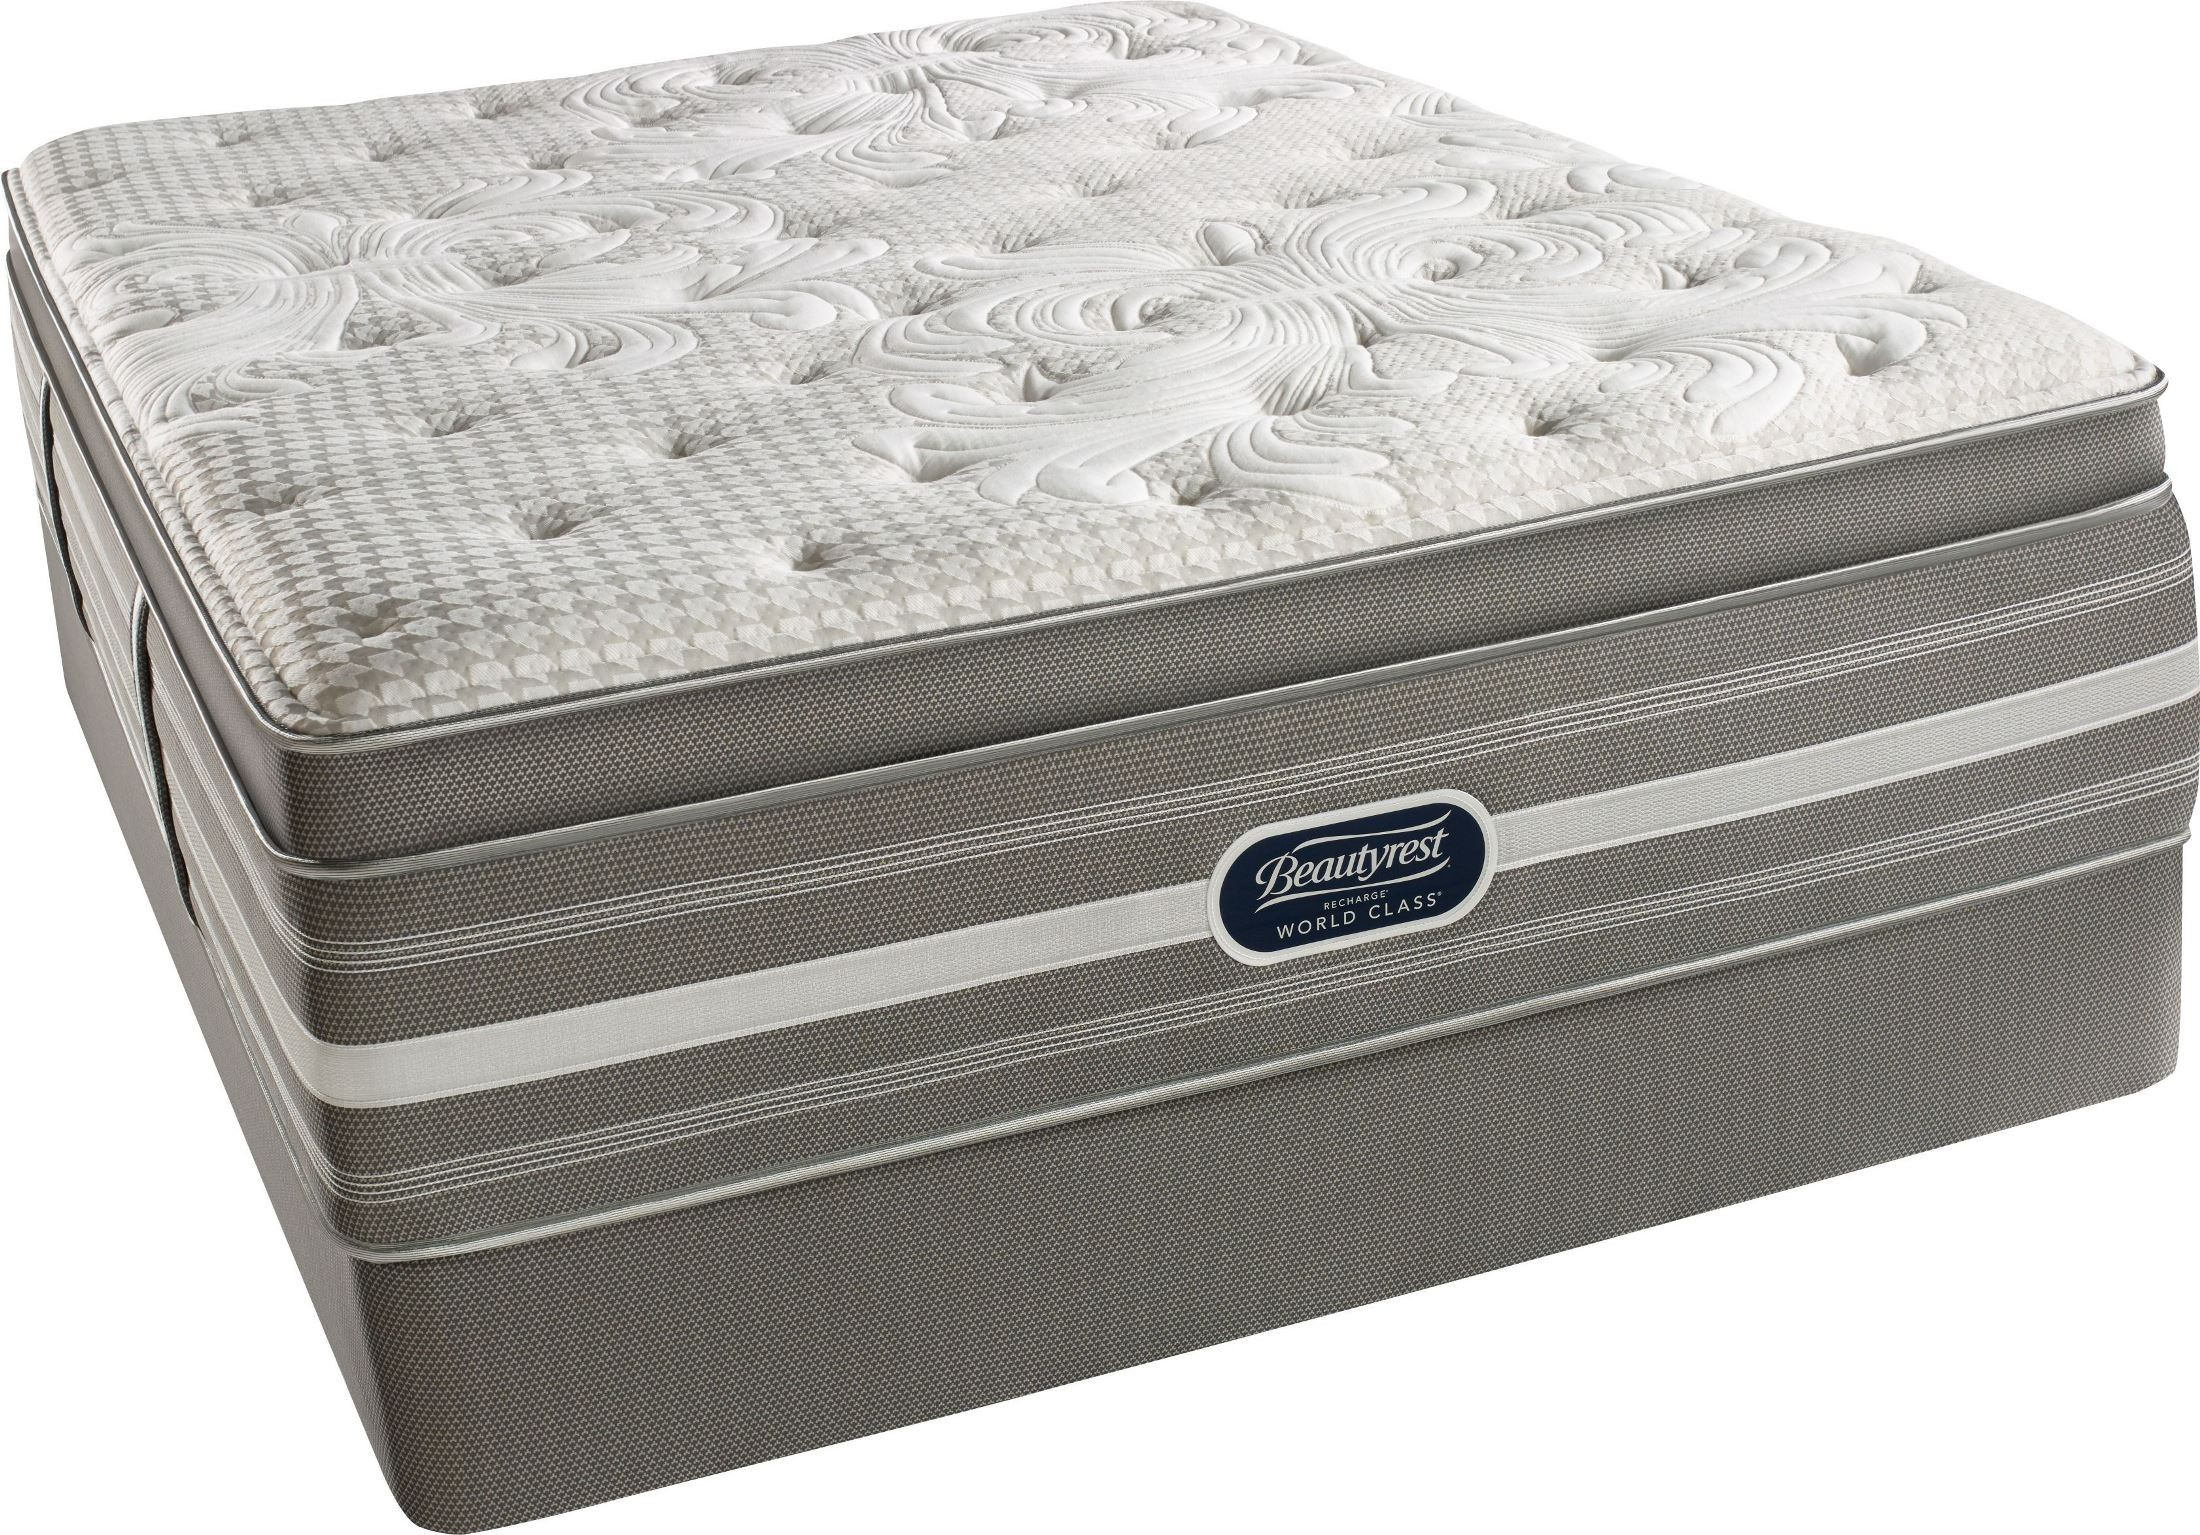 Recharge Chasewood Twin Pillow Top Luxury Firm Mattress Recharge Chasewood Pillow Top Luxury